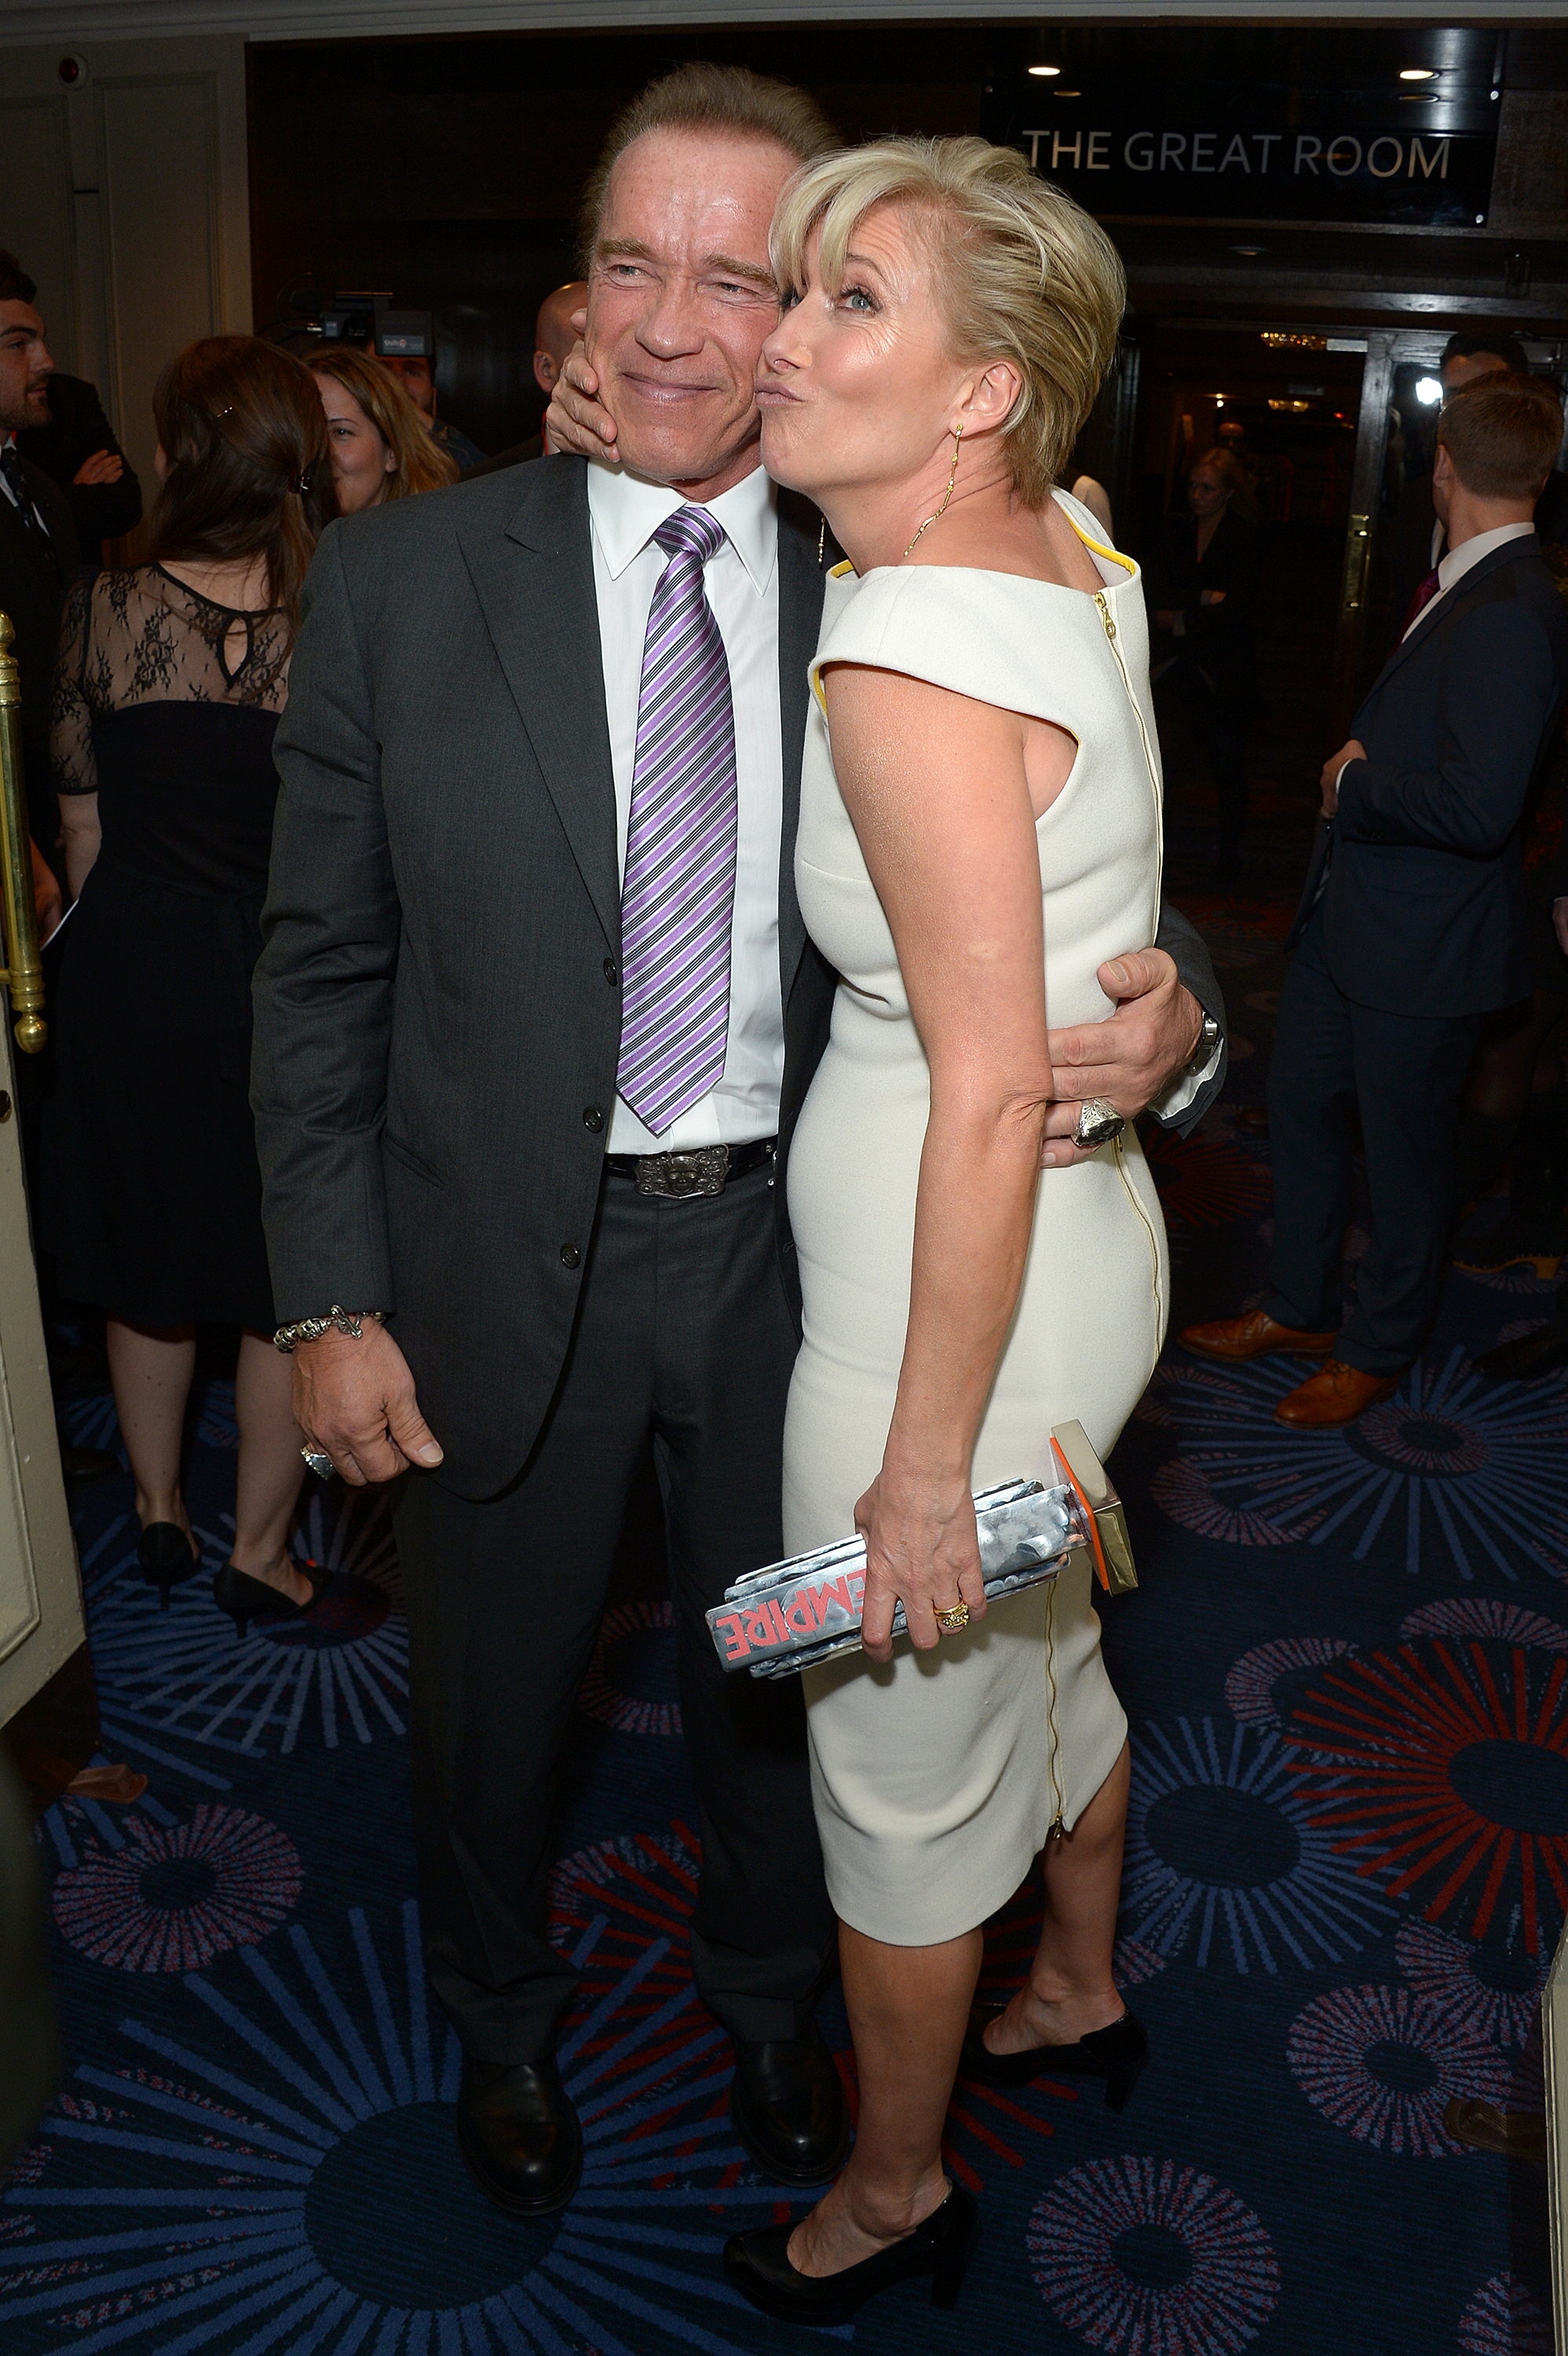 Brawn and beauty: Actors Arnold Schwarzenegger and Emma Thompson mug for the cameras Sunday at London's Grosvenor Hotel during the Empire Awards 2014 celebration.